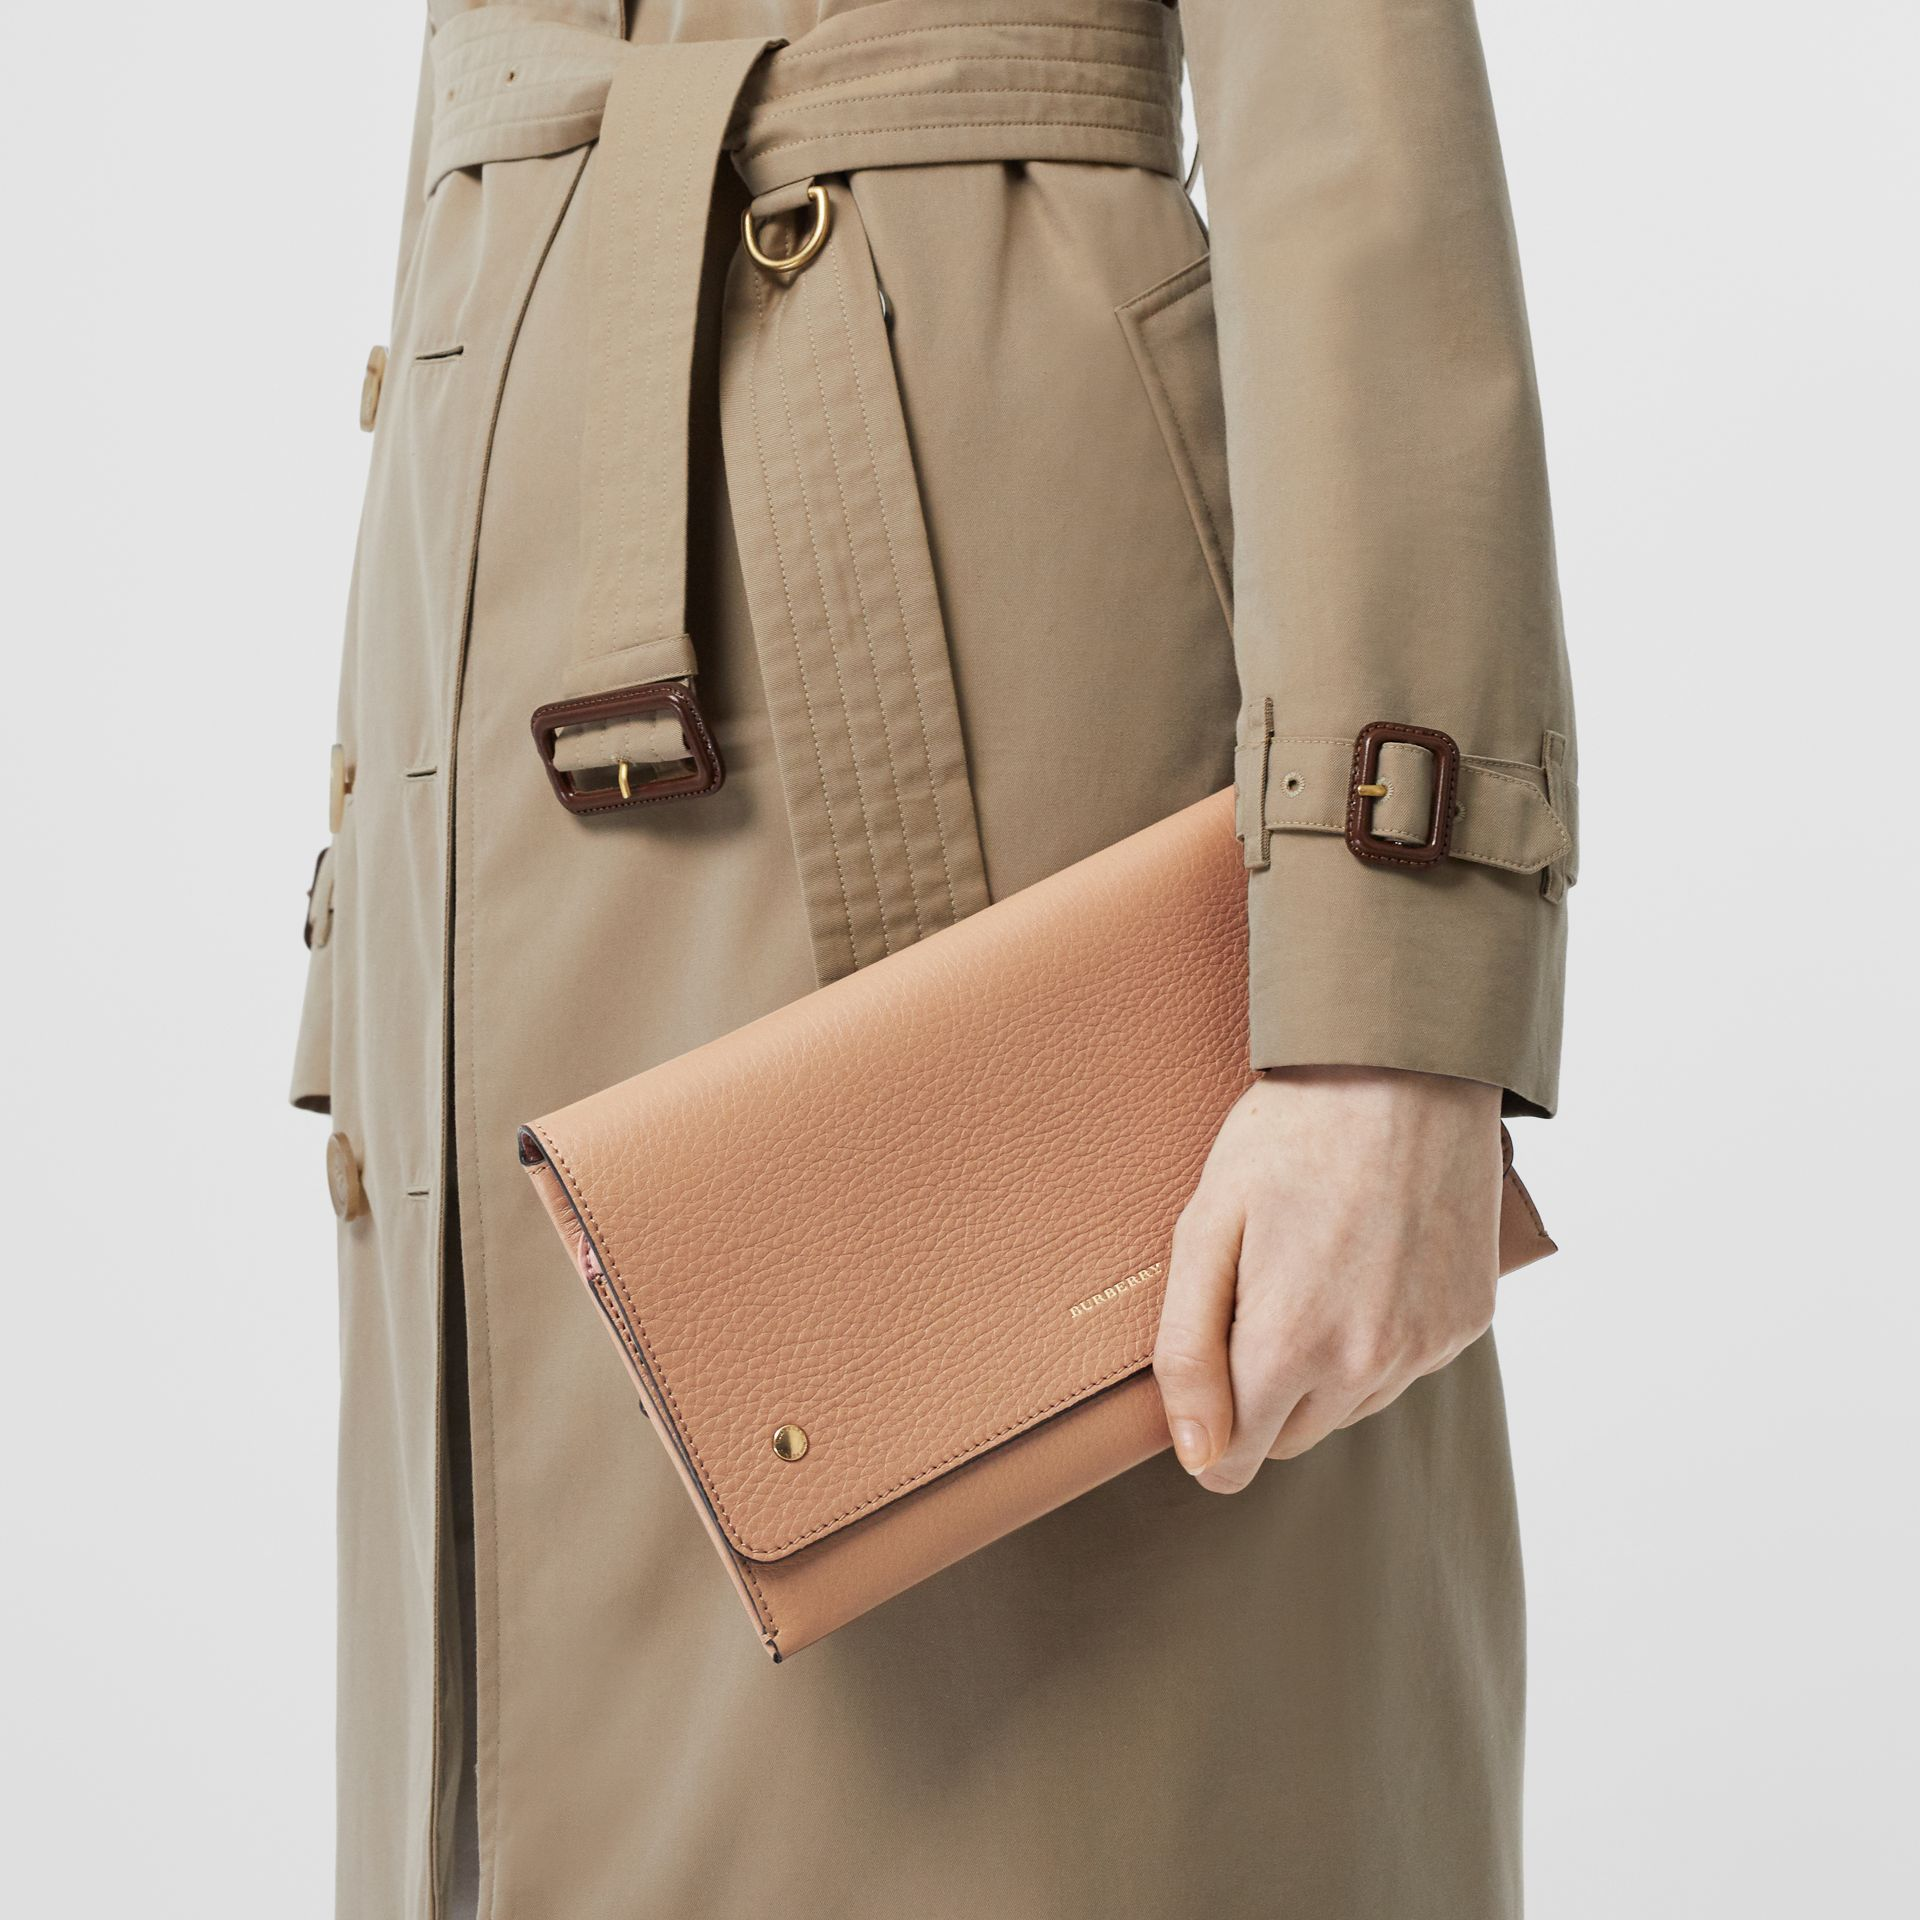 Two-tone Leather Wristlet Clutch in Light Camel - Women | Burberry Hong Kong S.A.R - gallery image 2